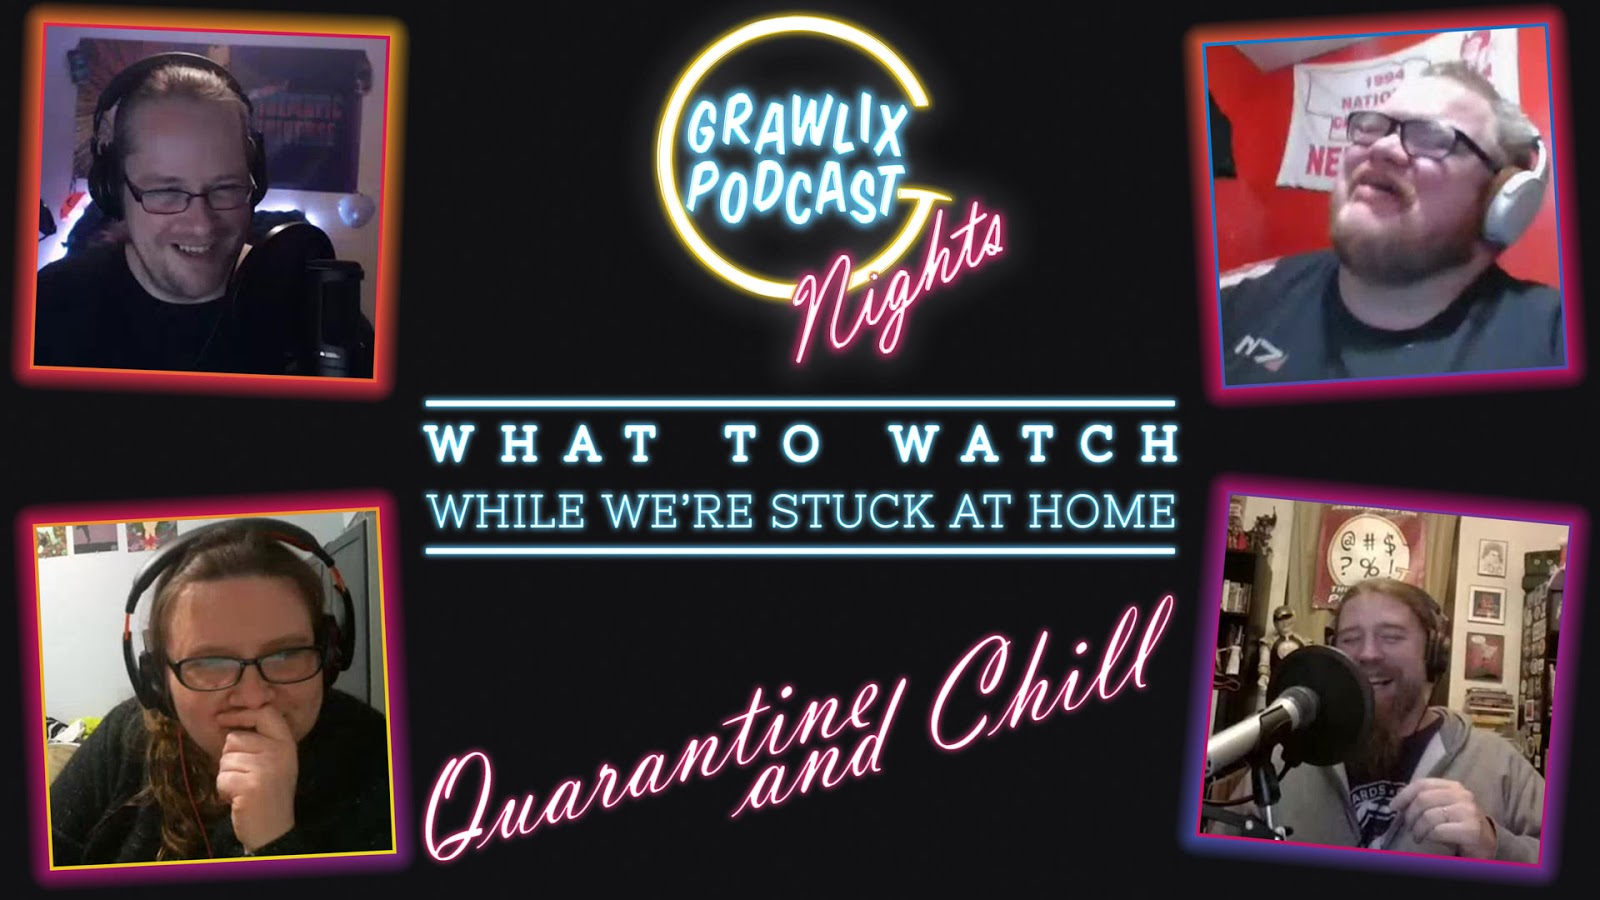 Grawlix Podcast Live: Quarantine and Chill